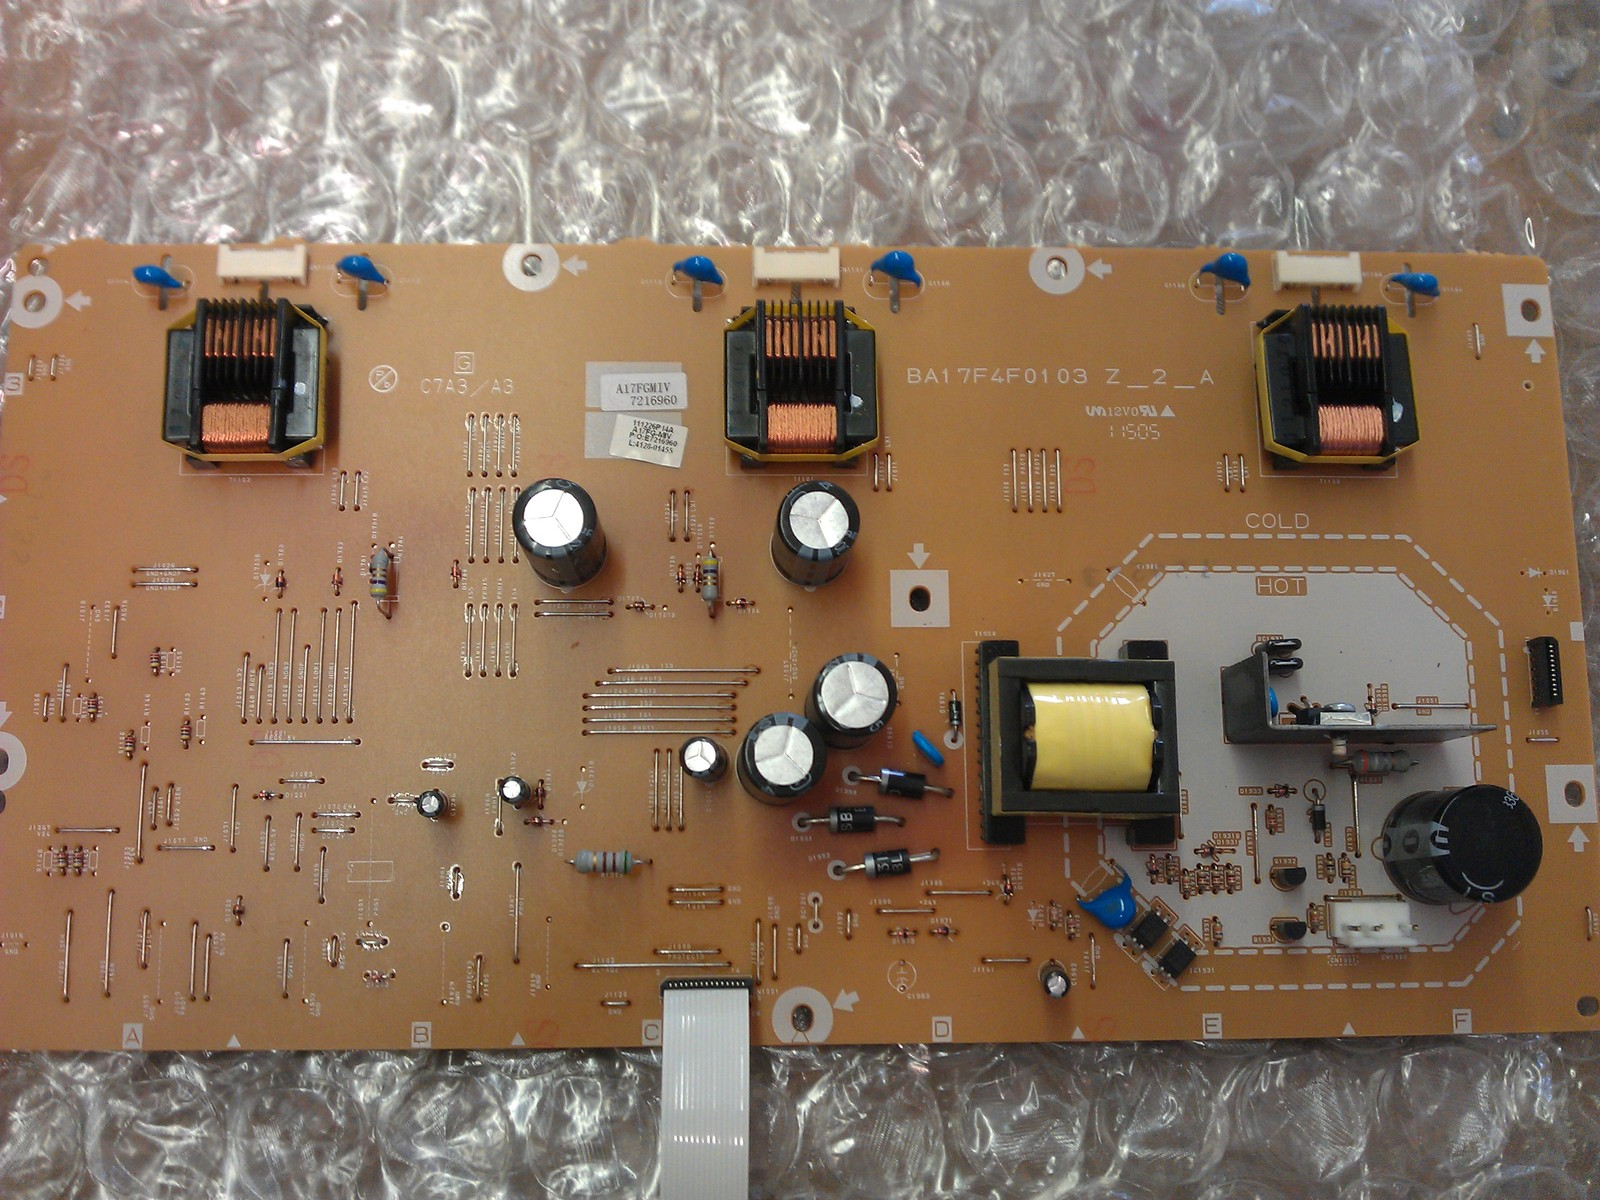 A17FGM1V-001-IV A17FGM1V Inverter Board From Philips 32PFL3506/F7 LCD TV